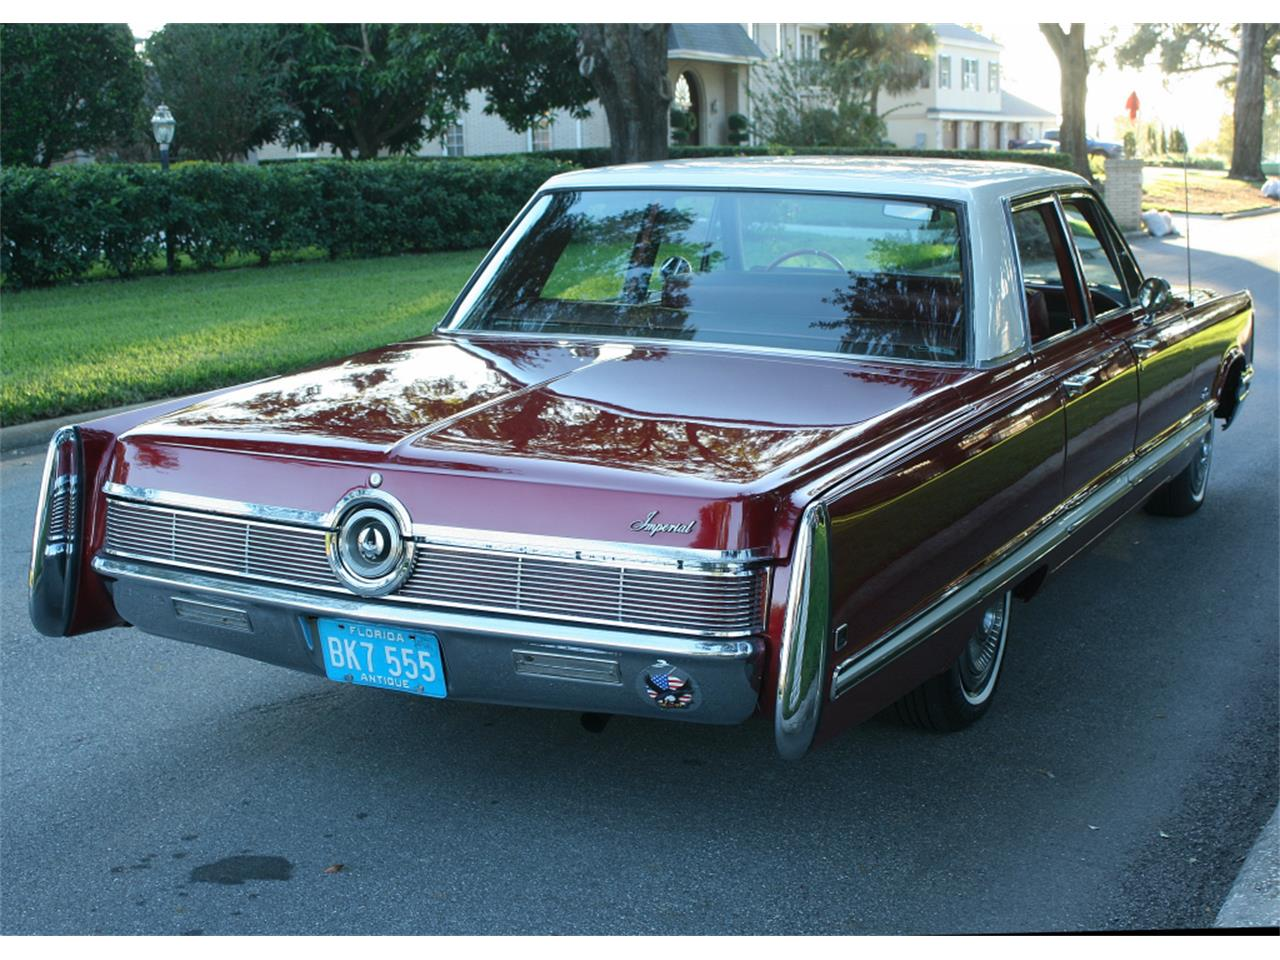 Large Picture of '68 Chrysler Imperial Offered by MJC Classic Cars - MA1H